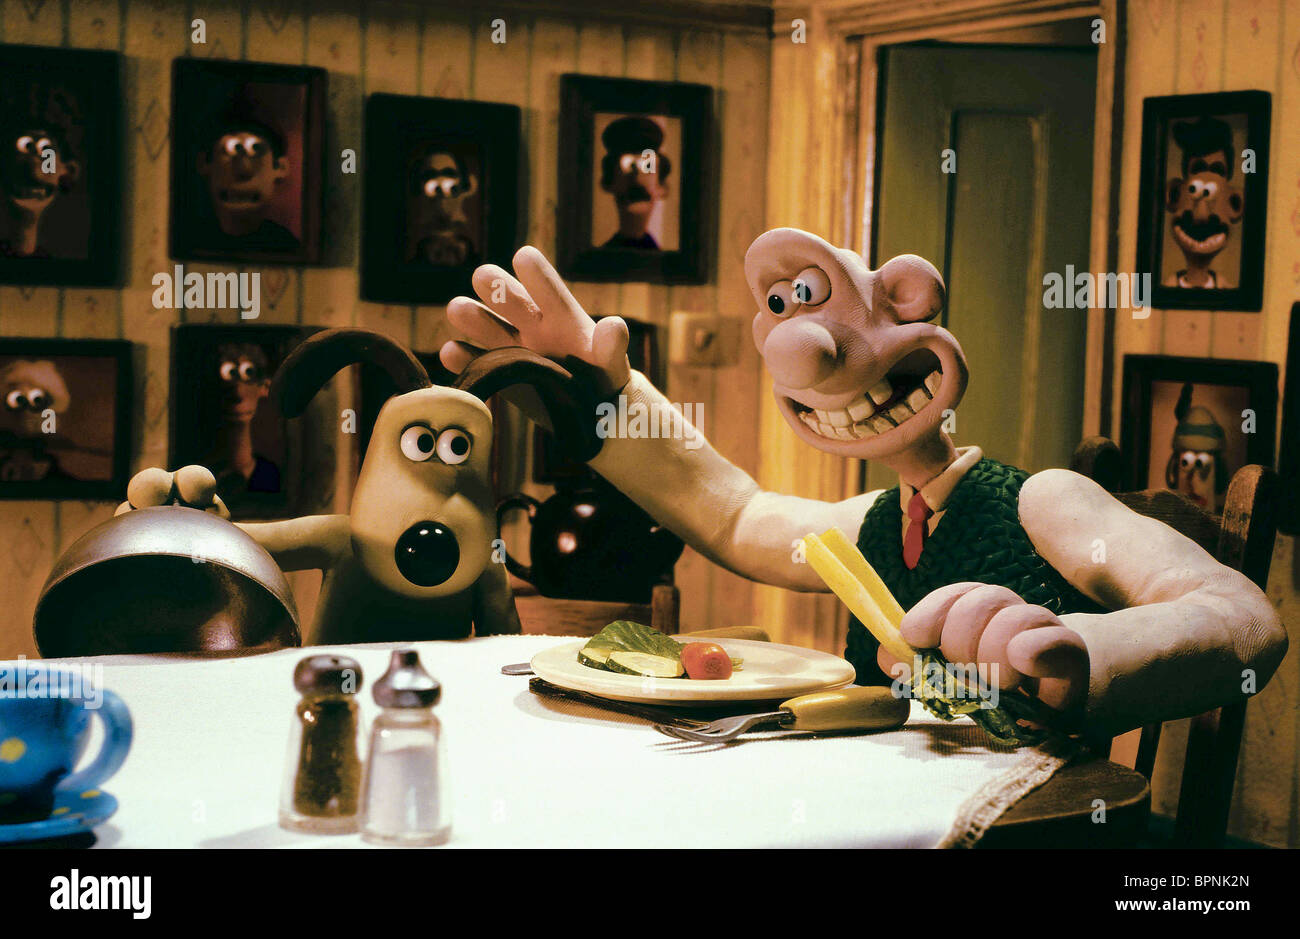 Gromit Wallace The Curse Of The Were Rabbit 2005 Stock Photo Alamy